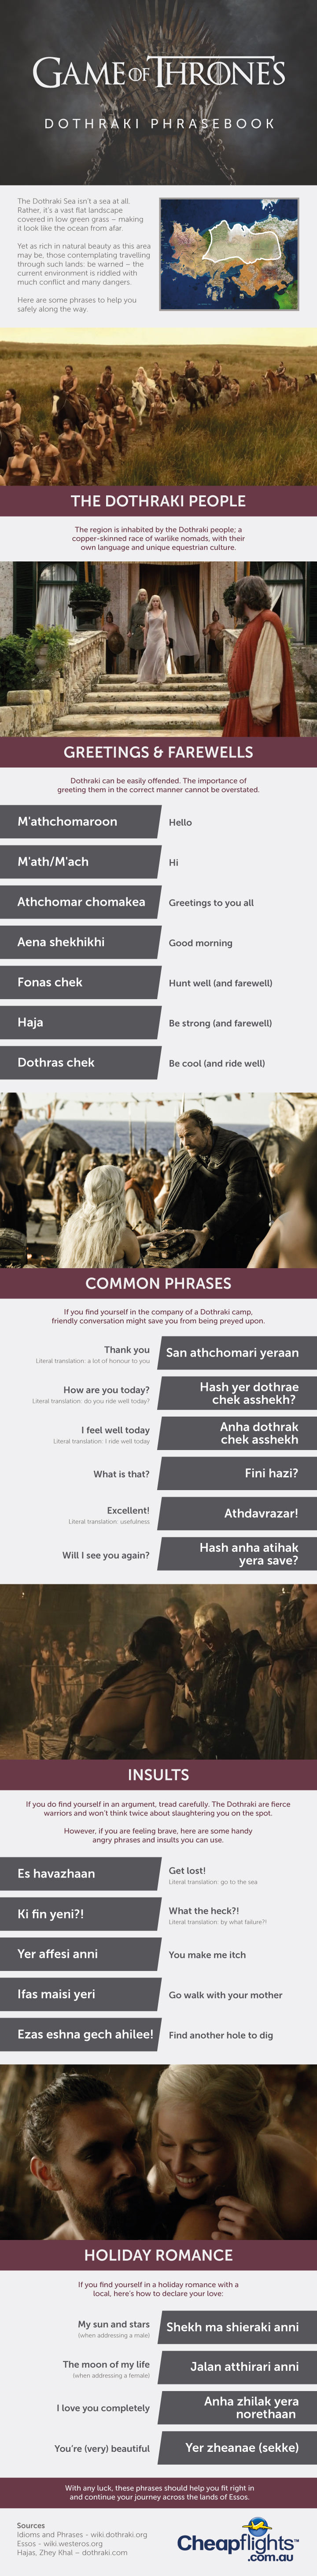 Game of Thrones: Dothraki Phrasebook